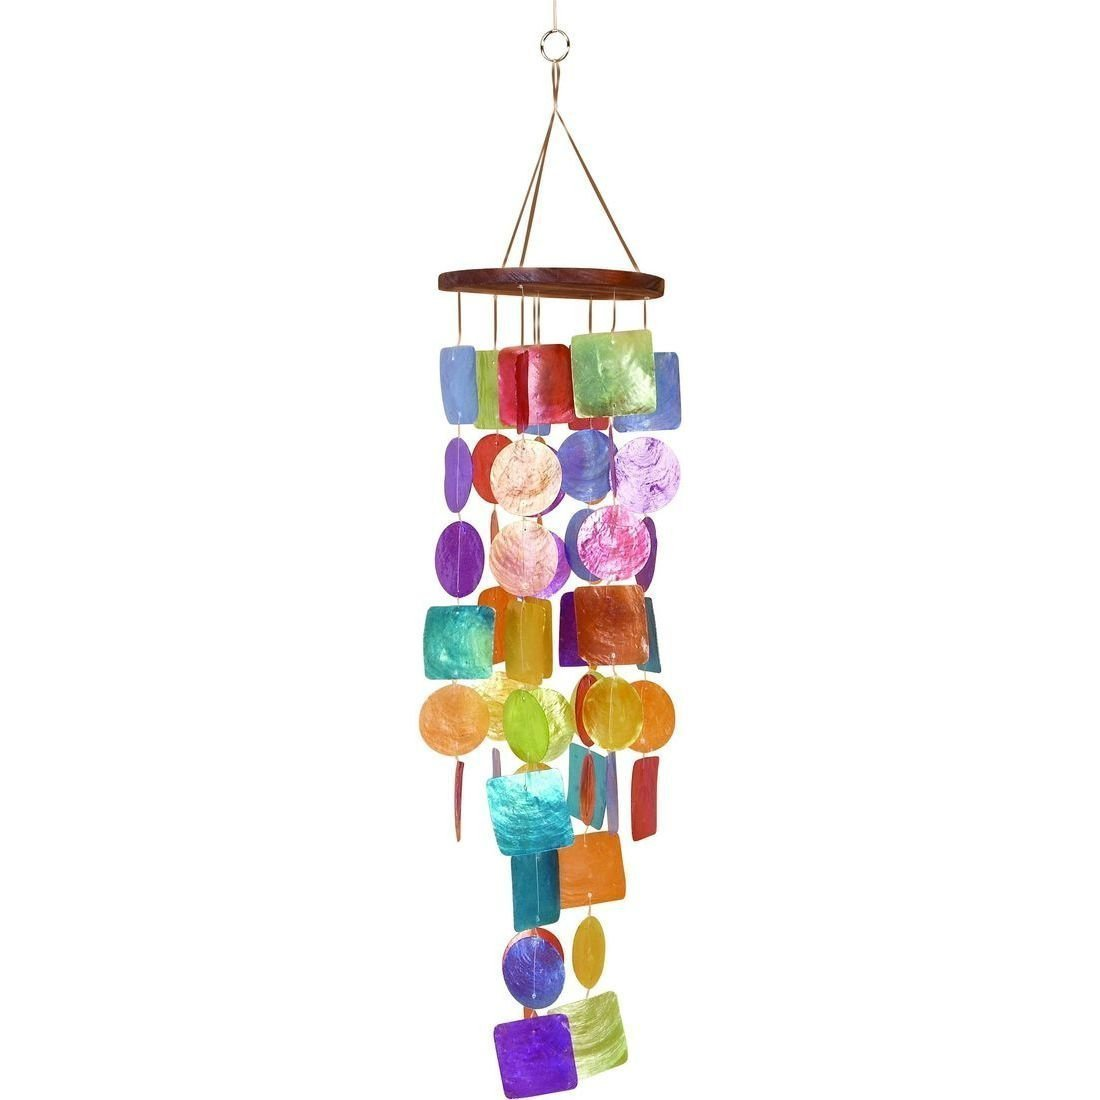 Artisan Crafted Capiz Shell Rainbow Wind Chime - Boho Bohemian Decor